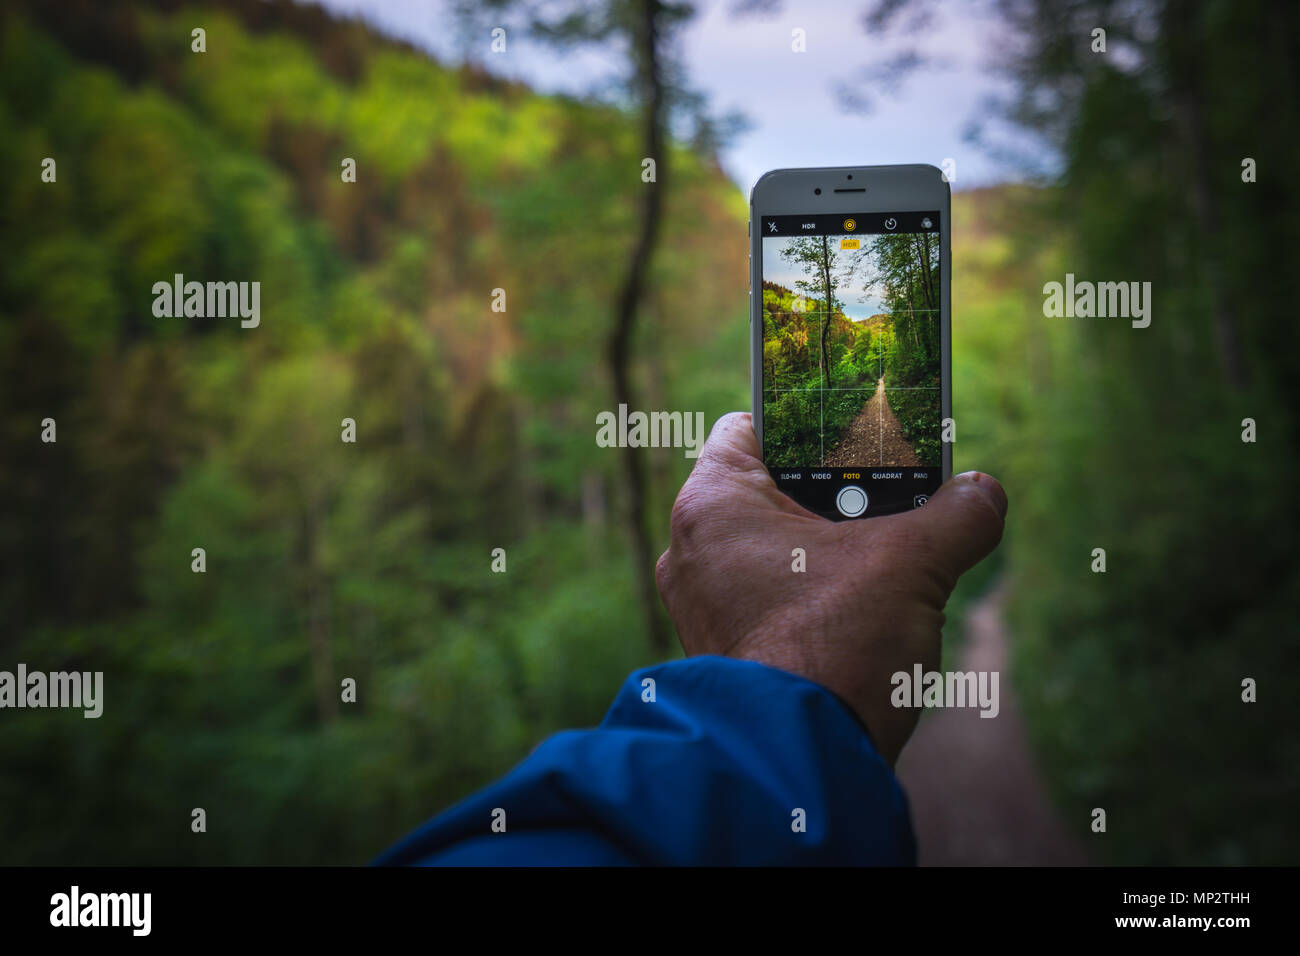 Take a photo with your mobile phone in the Wutachschlucht while hiking. - Stock Image